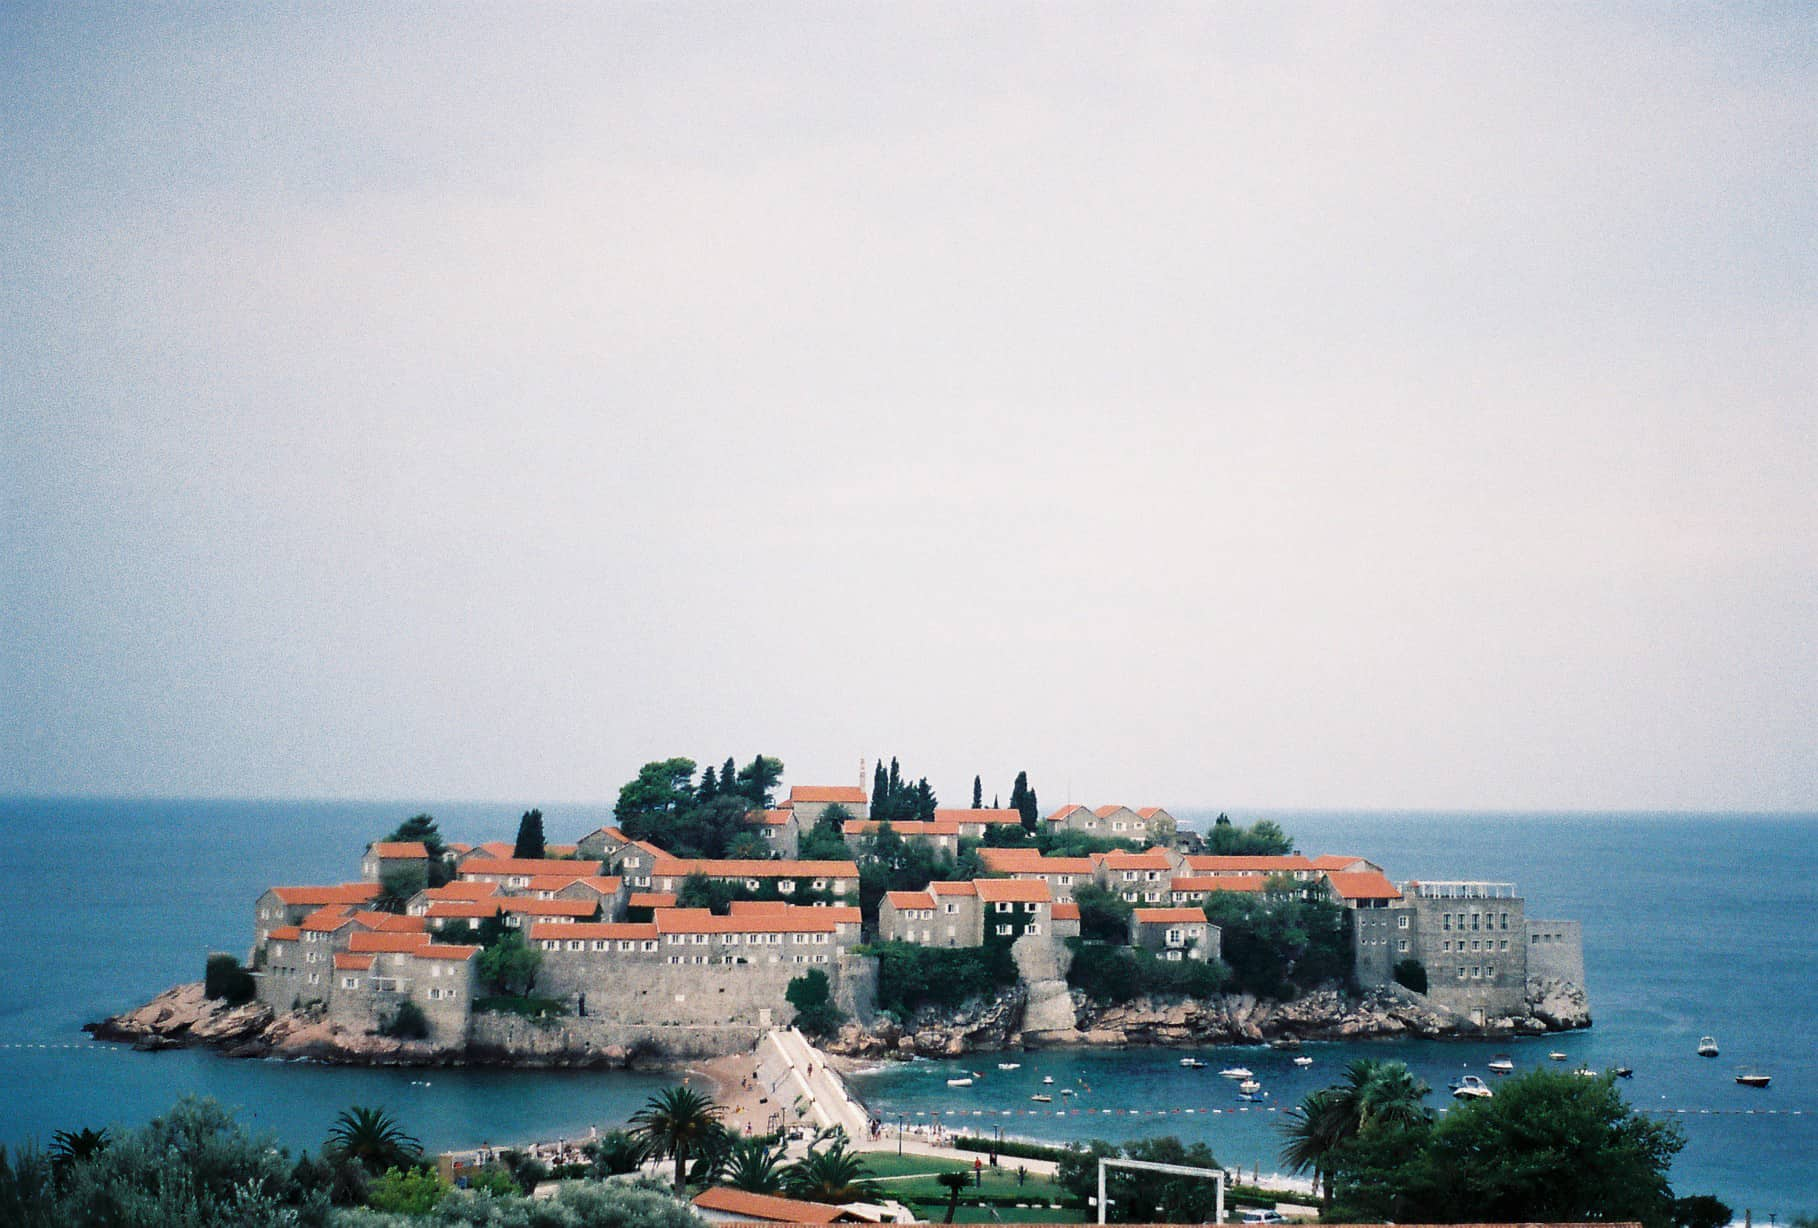 Sveti Stefan: The Drama Of A Cloudy Day